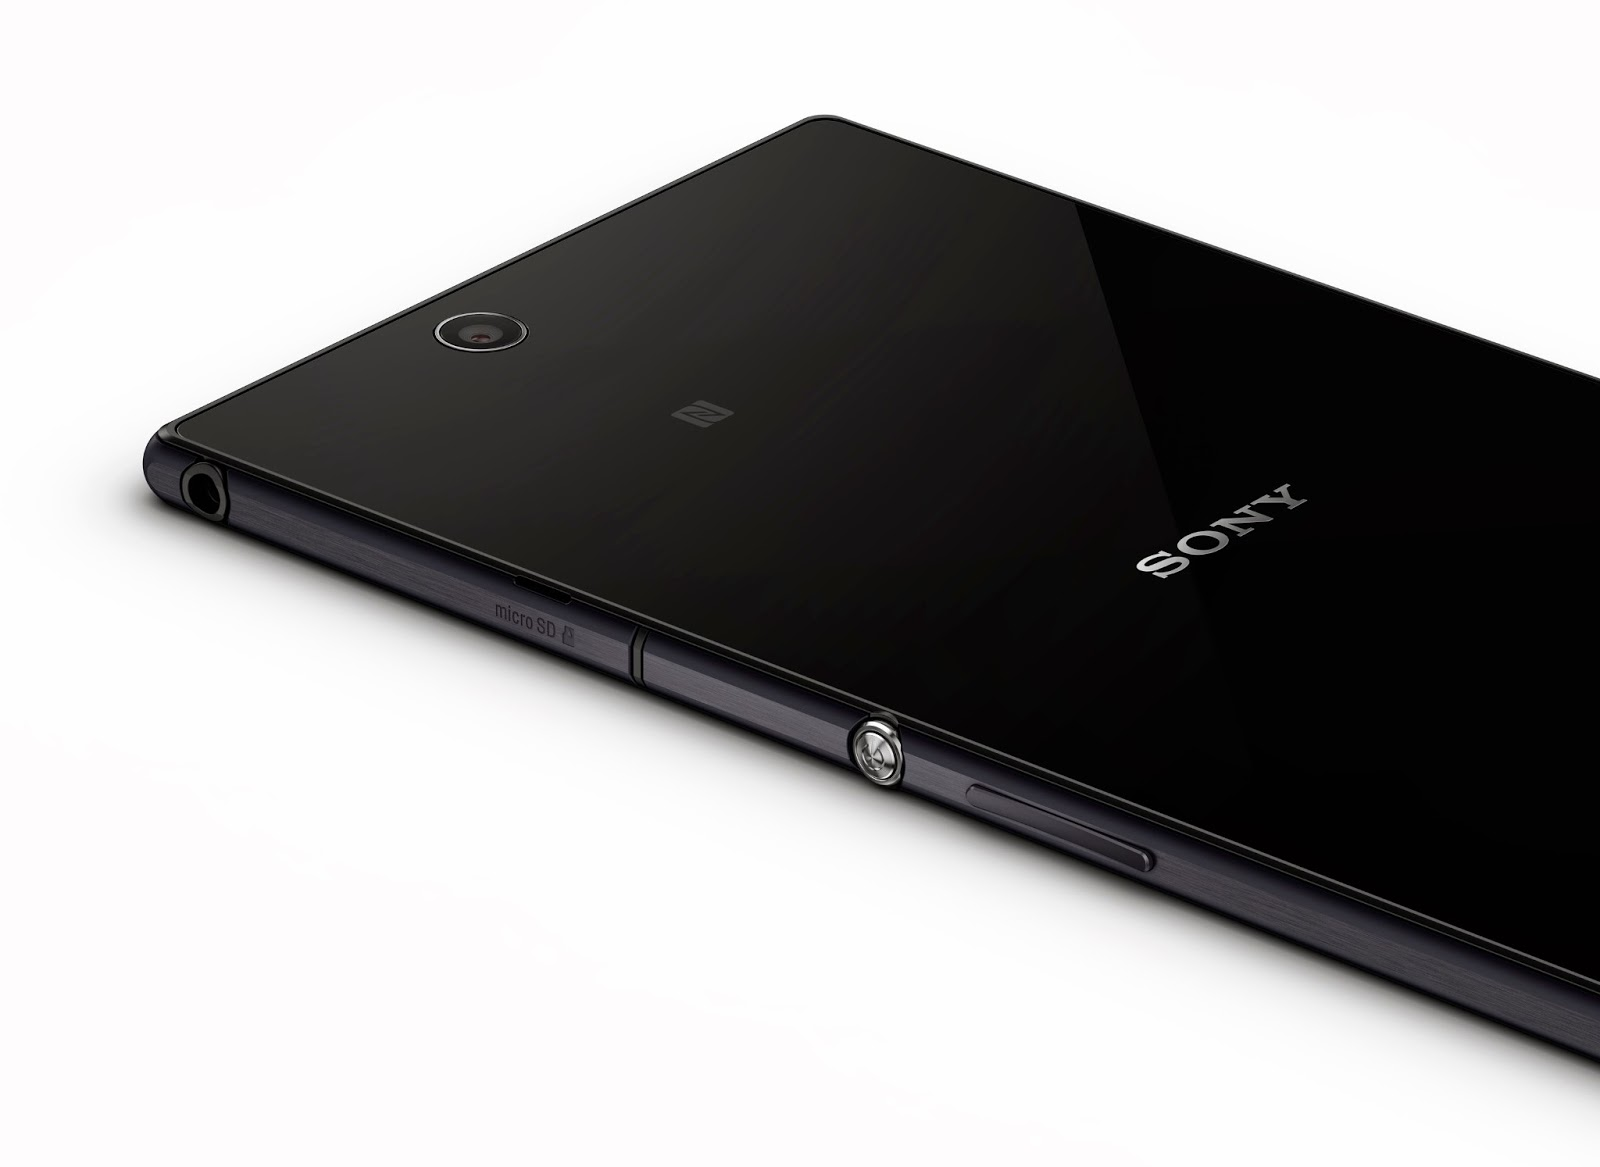 Xperia Z Ultra Camera